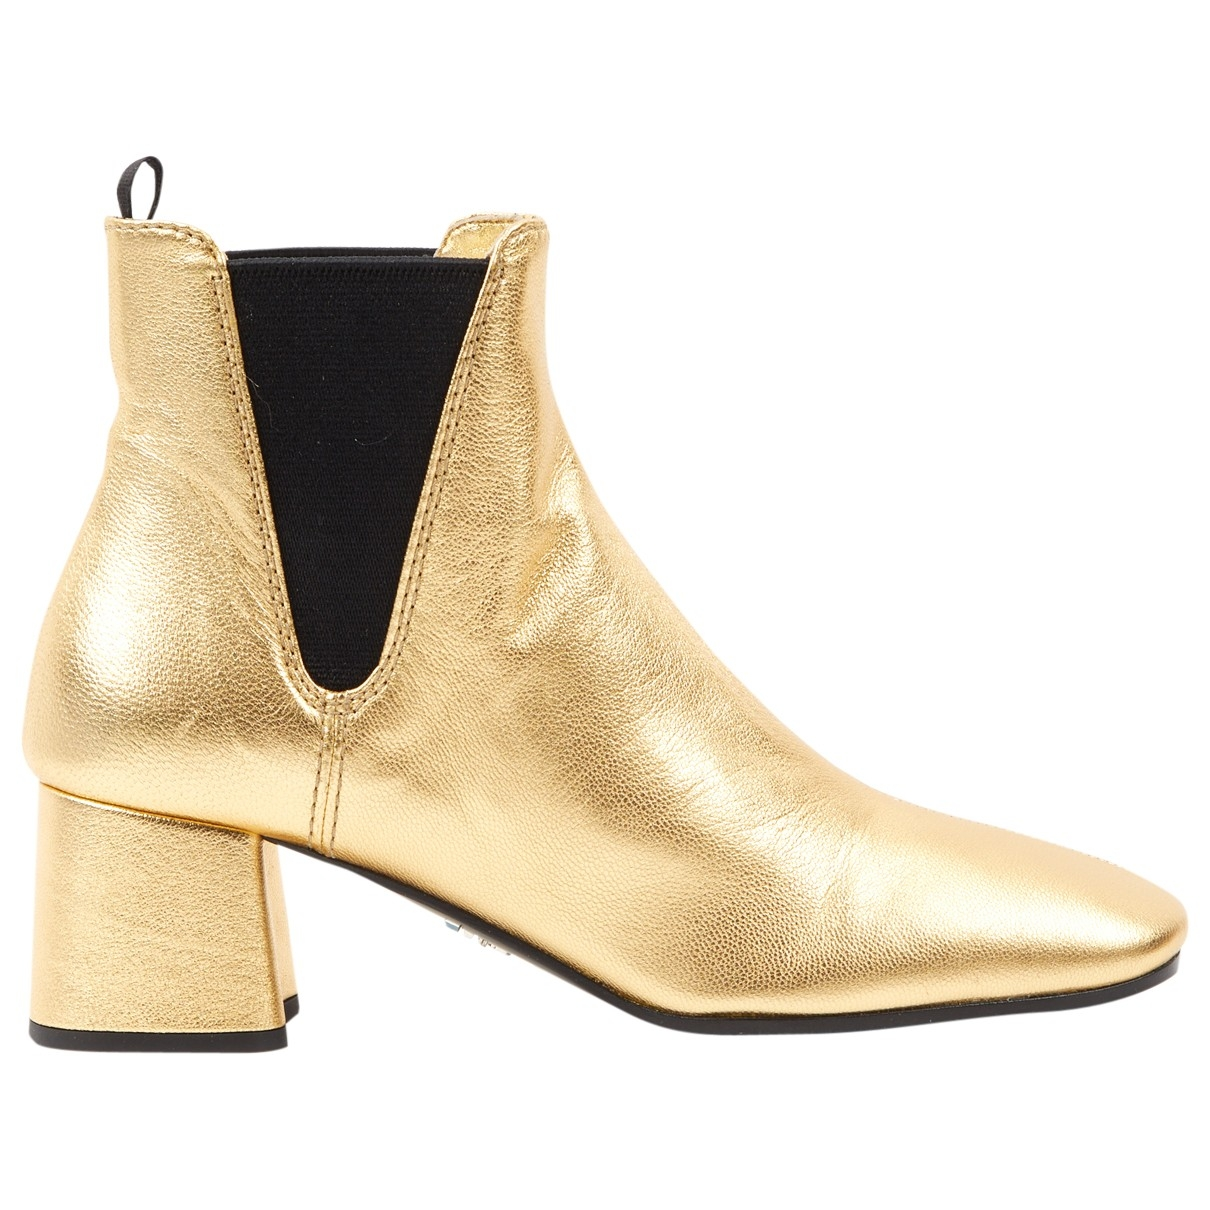 Prada \N Gold Leather Ankle boots for Women 35 EU